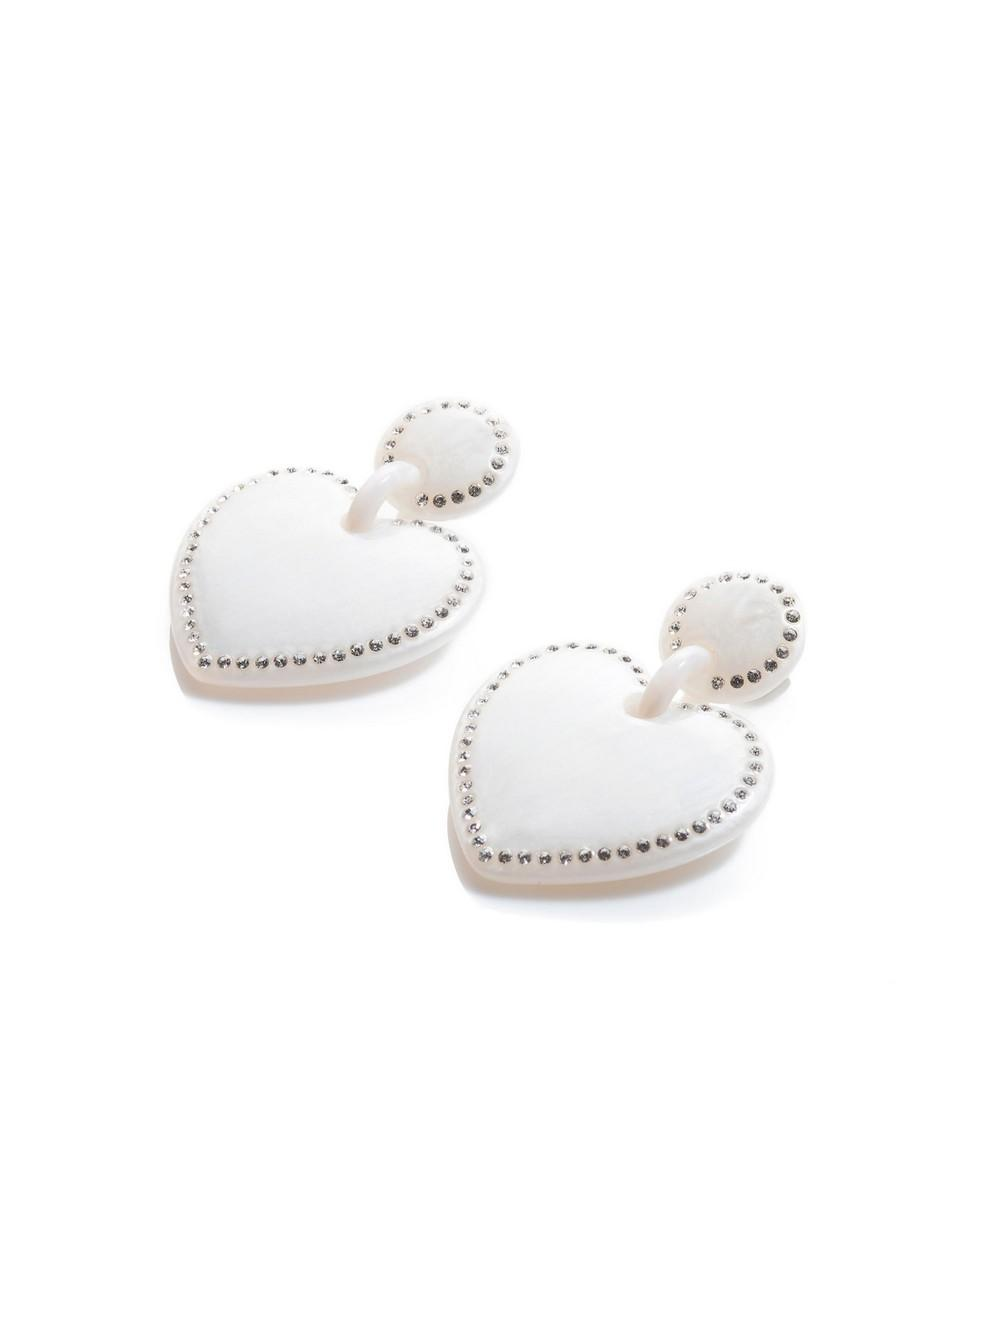 Jeweled Stitched Heart Earrings Item # LS0966MP